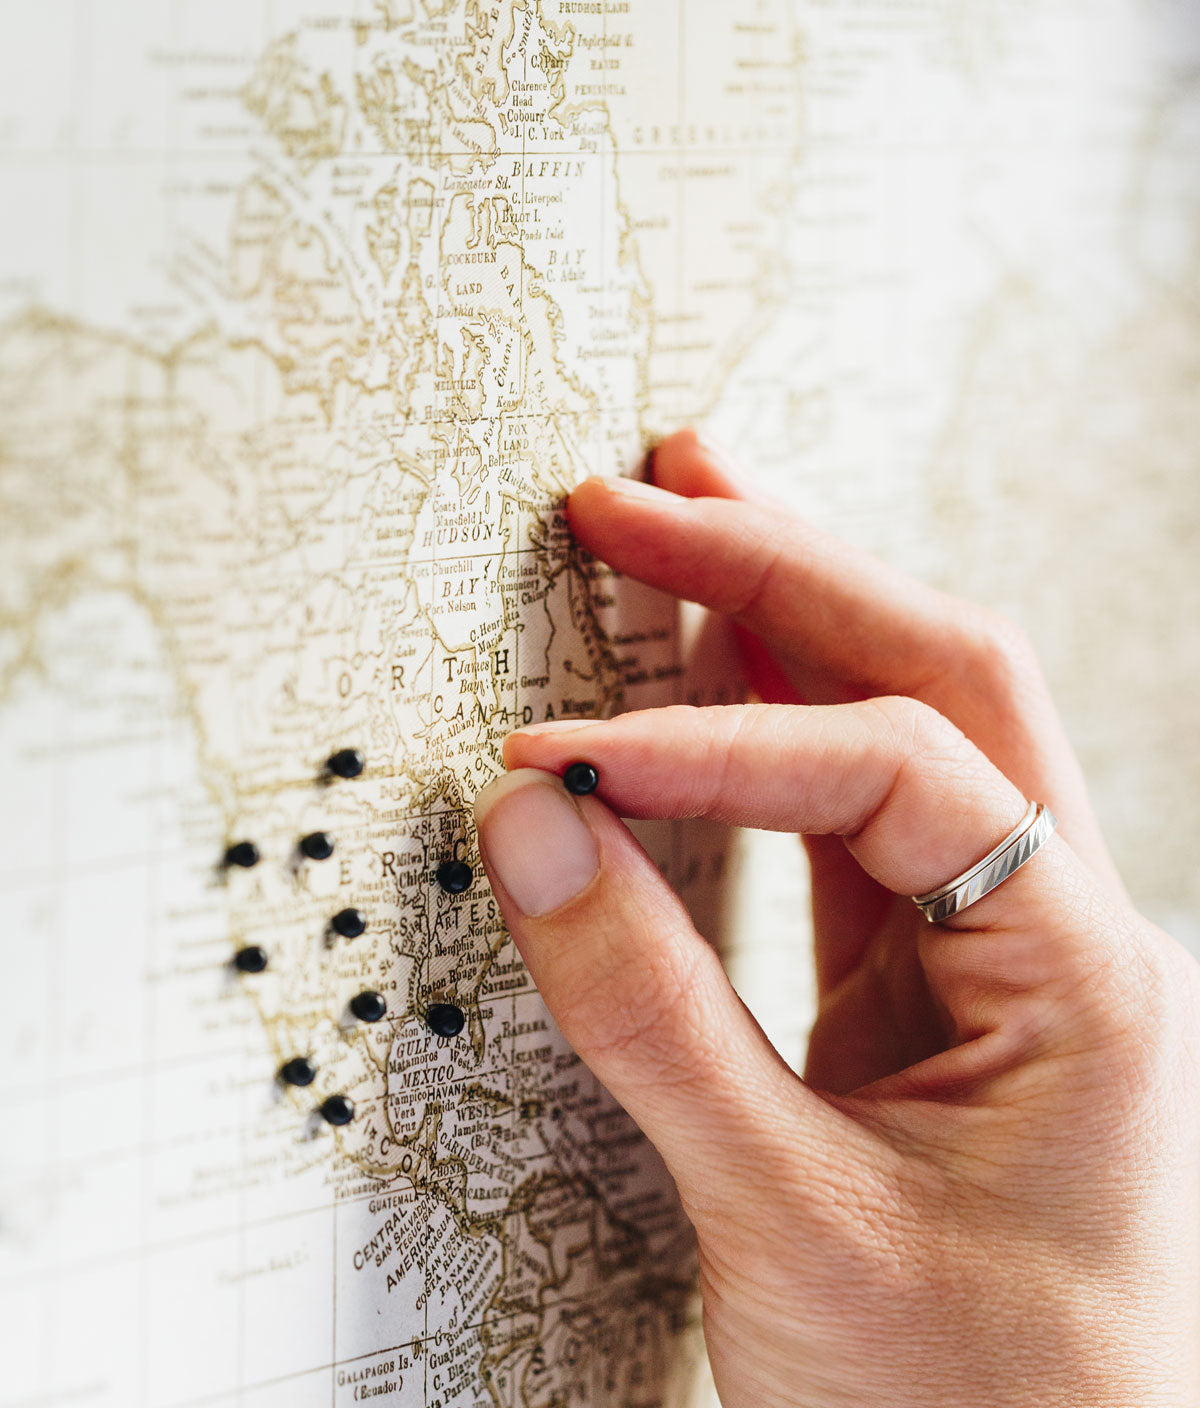 Woman's hand seen pinning locations on the anniversary push pin map